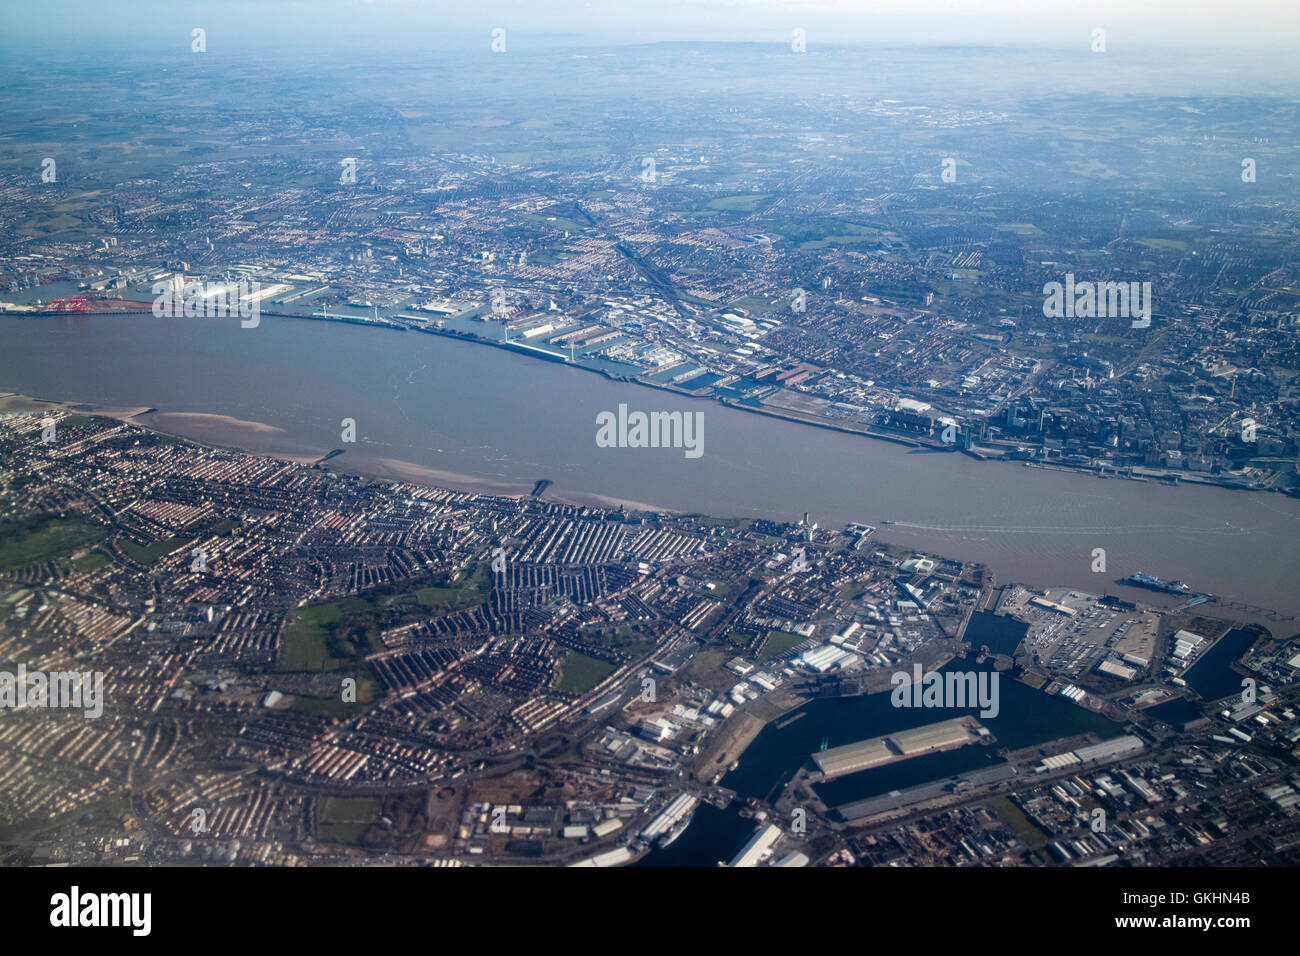 aerial view of Liverpool, birkenhead and the river Mersey - Stock Image